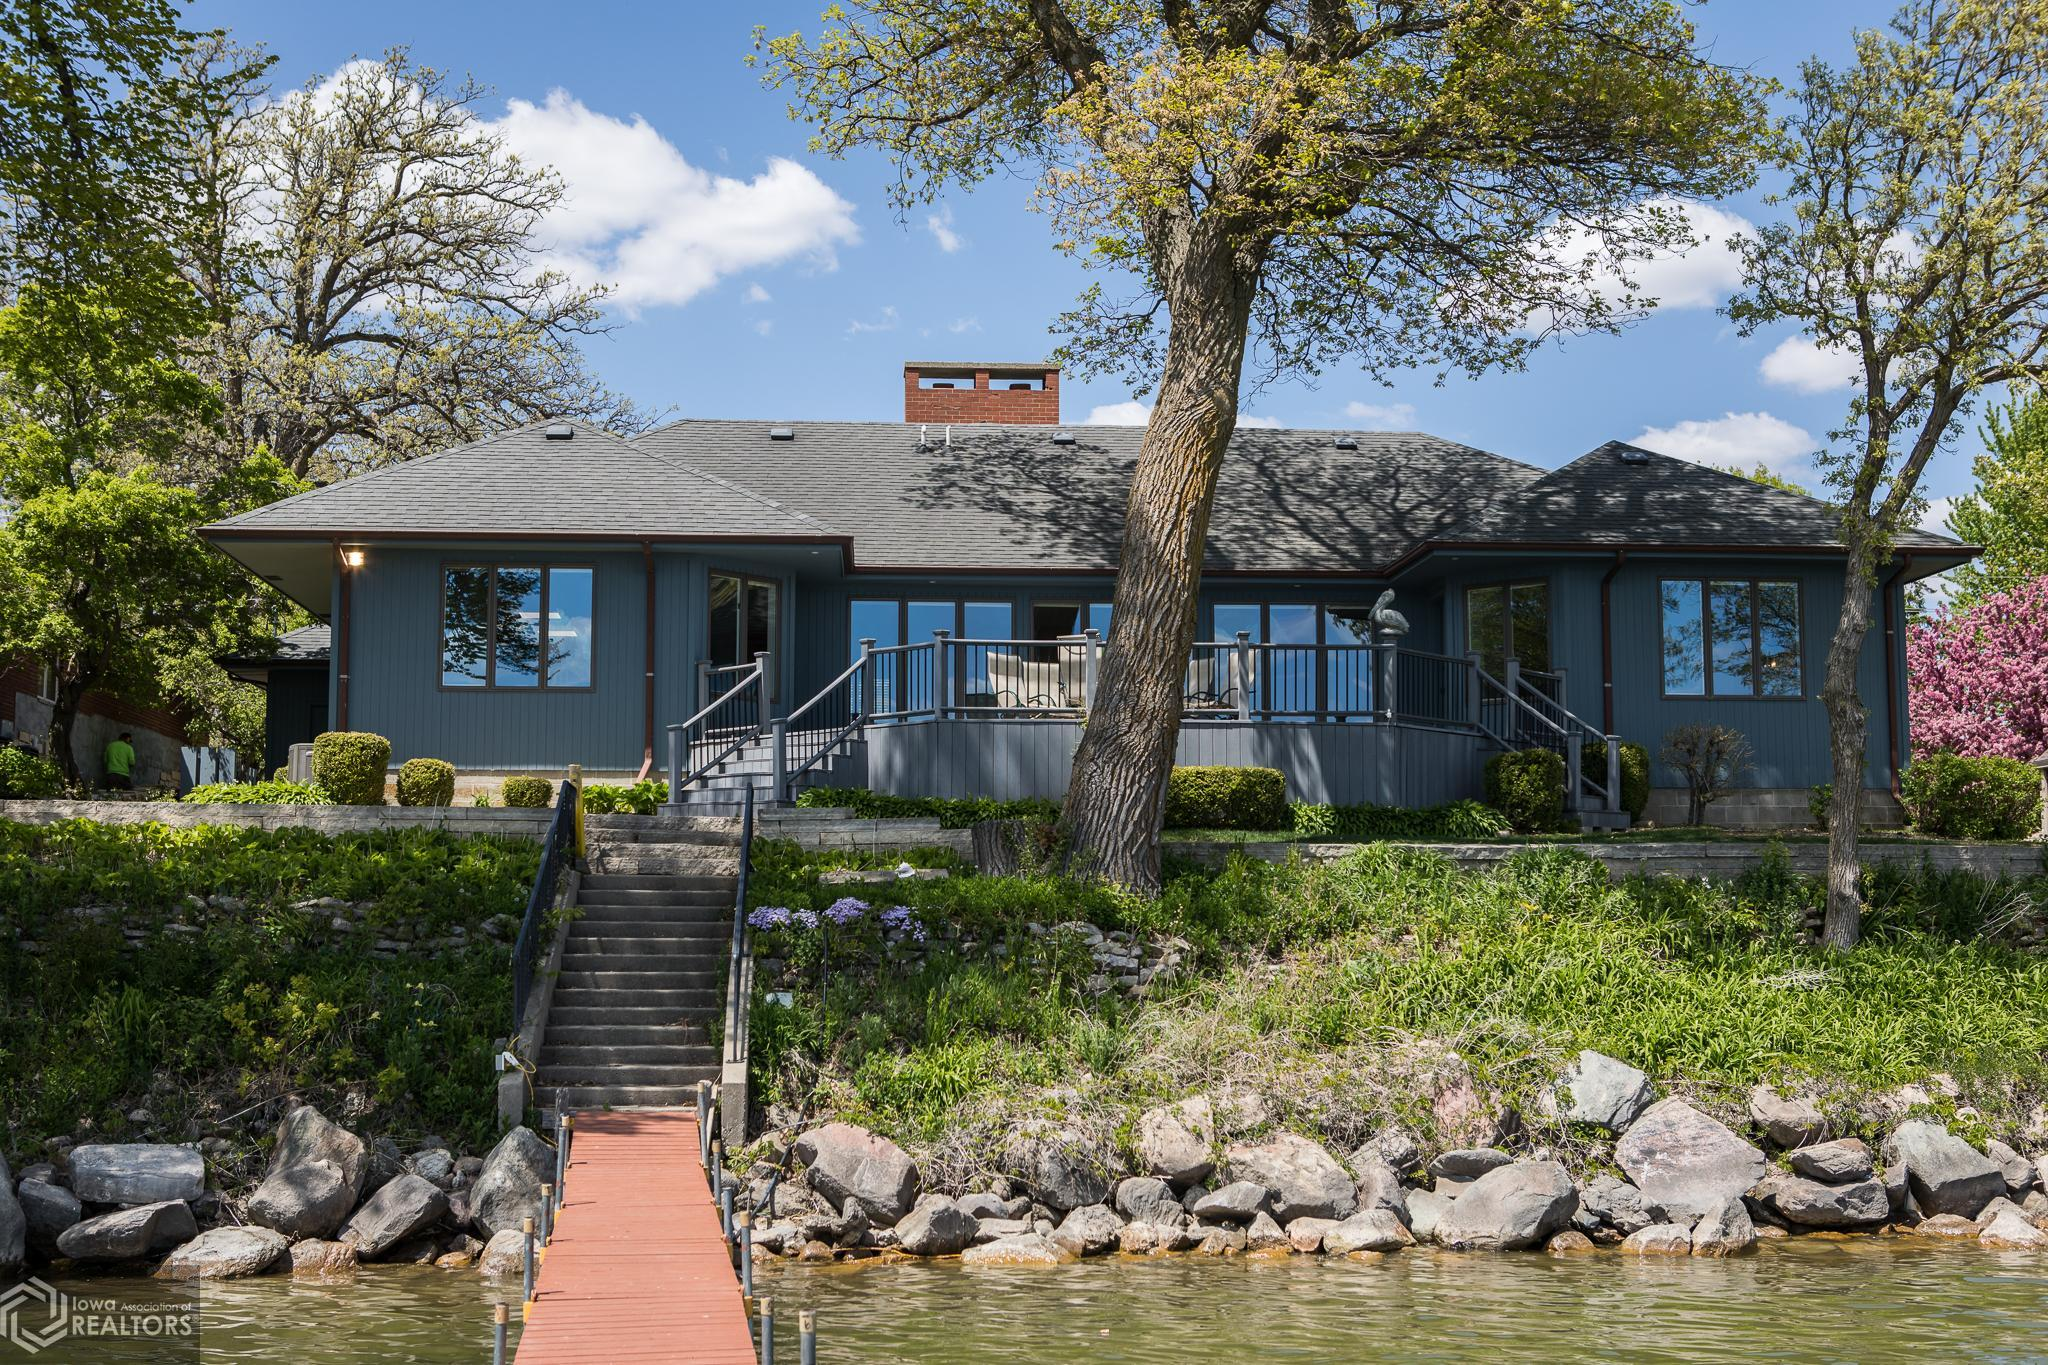 Rarely found lakefront home with 100 ft of lakeshore, attached double garage and sizeable yard! Three bedroom, 2 1/2 bath home with room for everyone. Large master suite with panoramic lake view. Large kitchen and dining with lake view. This one won't last long! Call your agent today to take a look!